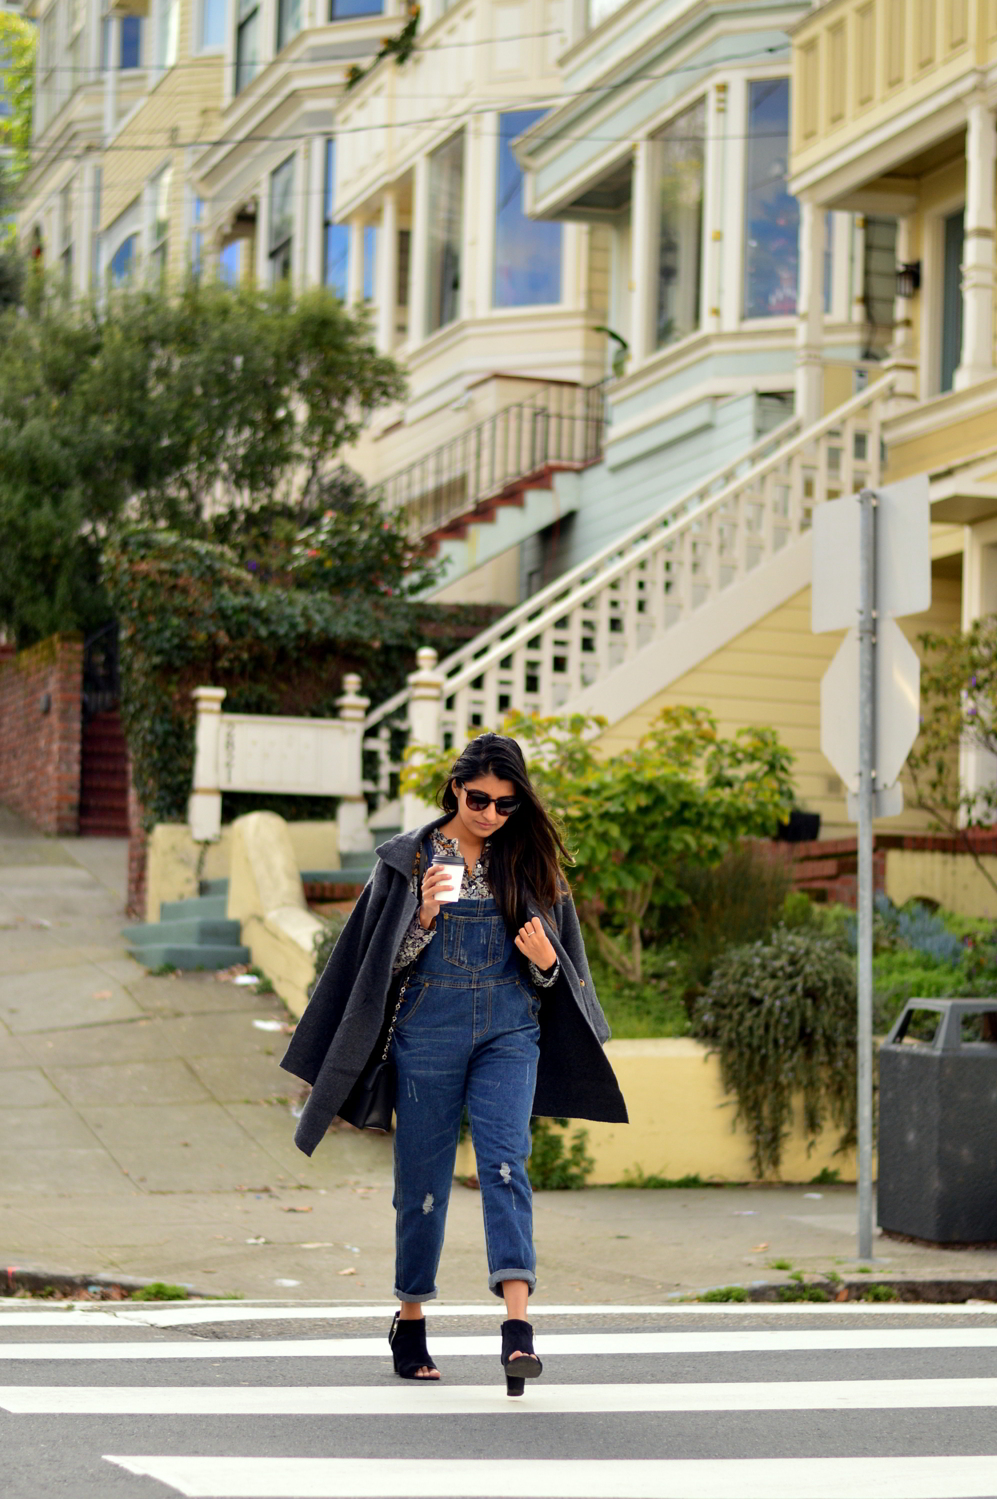 boyfriend-overalls-floral-blouse-spring-style-bud-stop-san-francisco-blogger-outfit 4